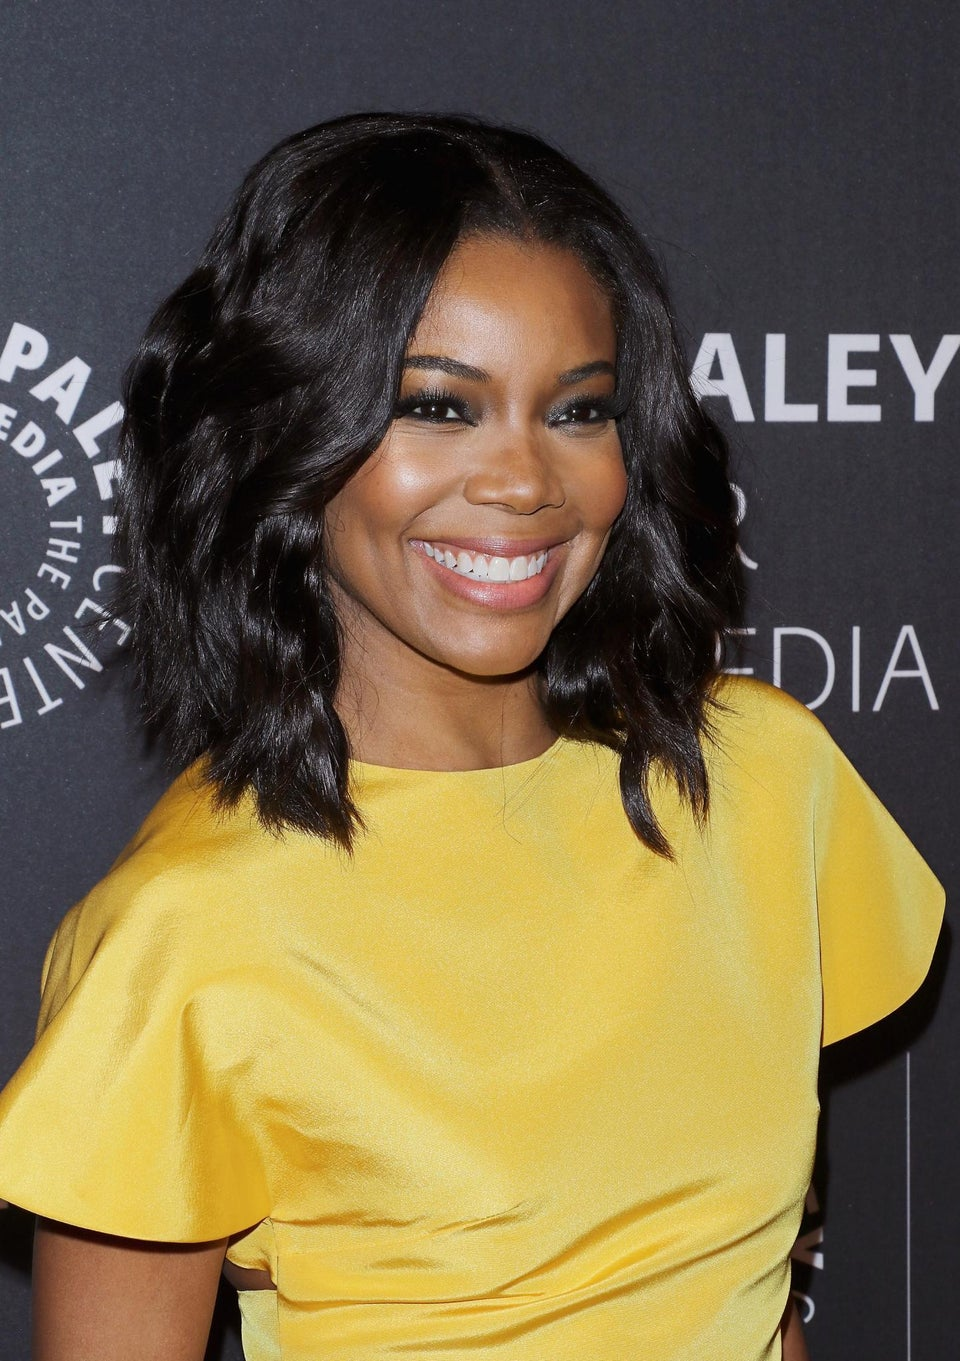 Exclusive: Gabrielle Union Dishes On Her Modern Married Life, The Power of Love